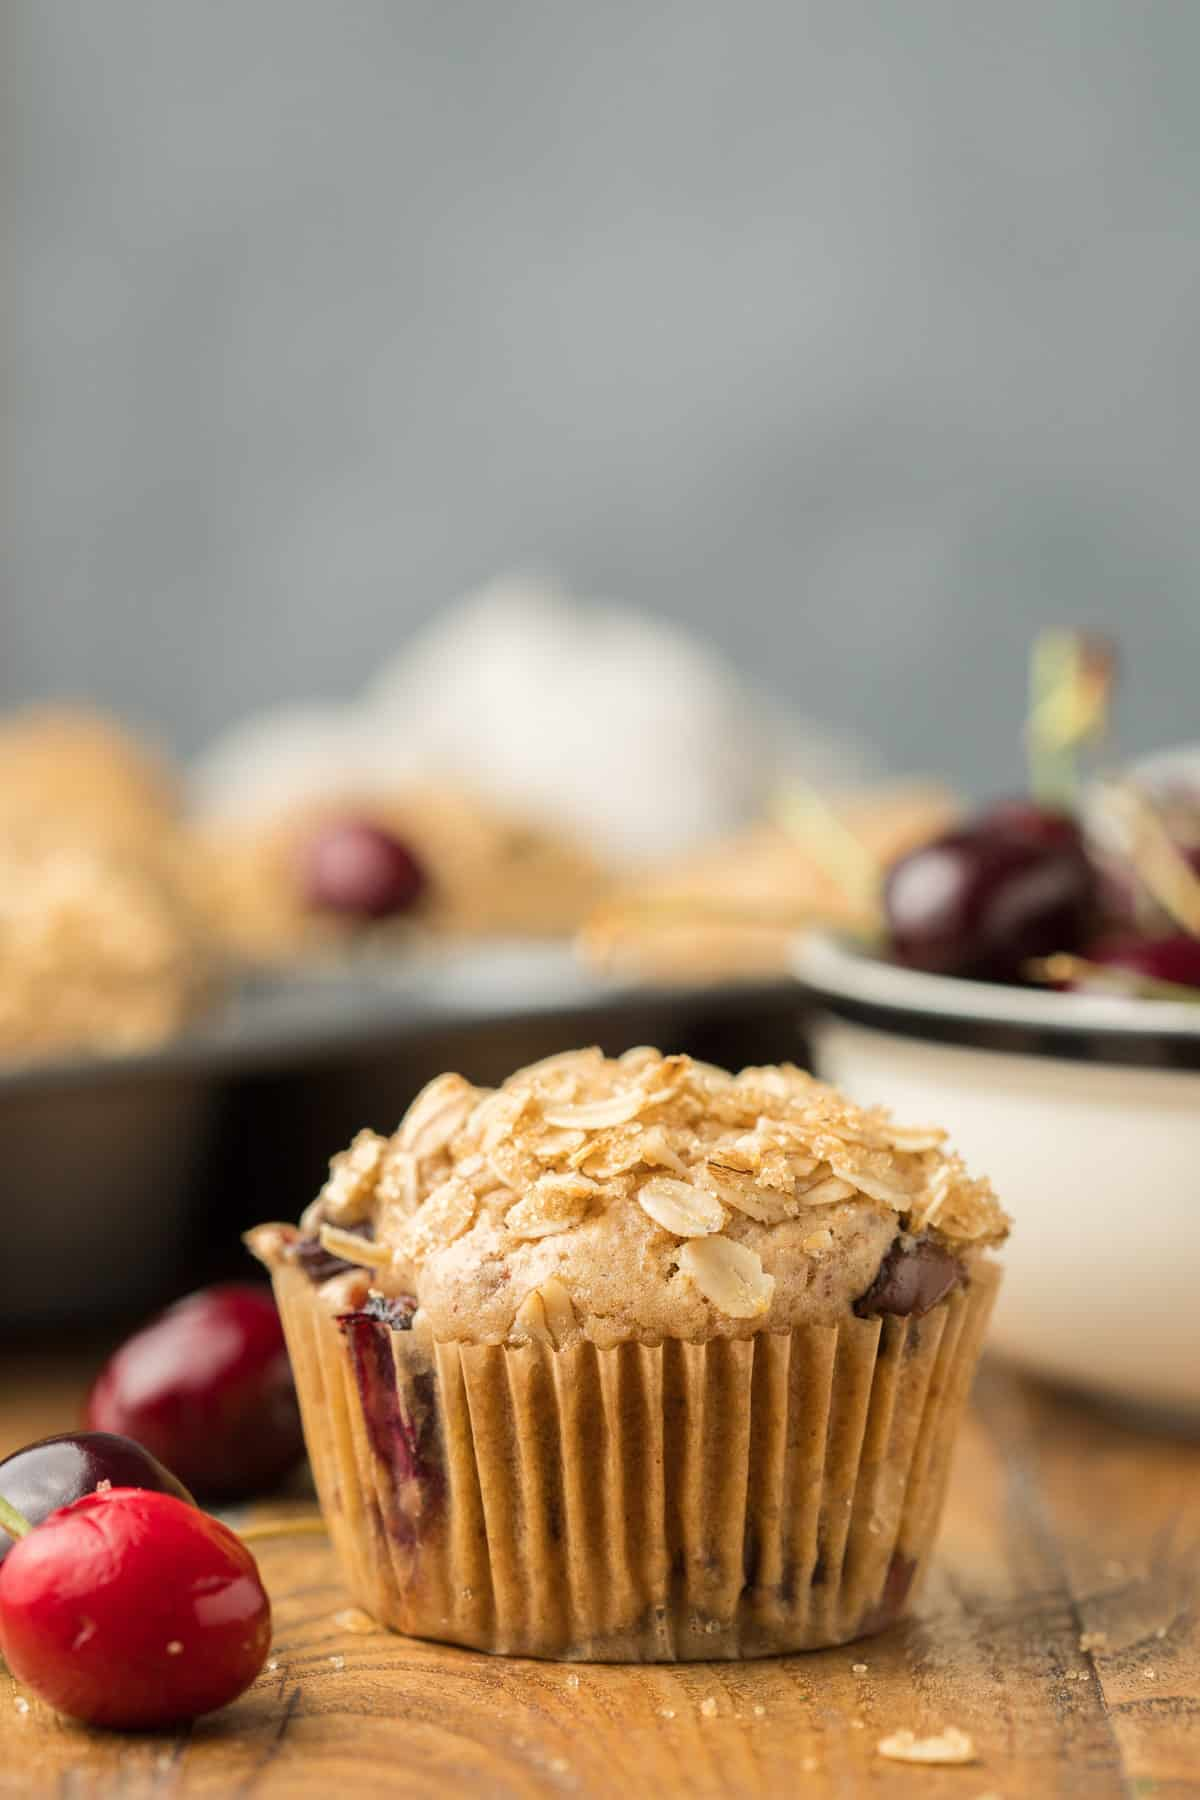 Close Up of a Vegan Cherry Muffin with Bowl of Cherries in the Background